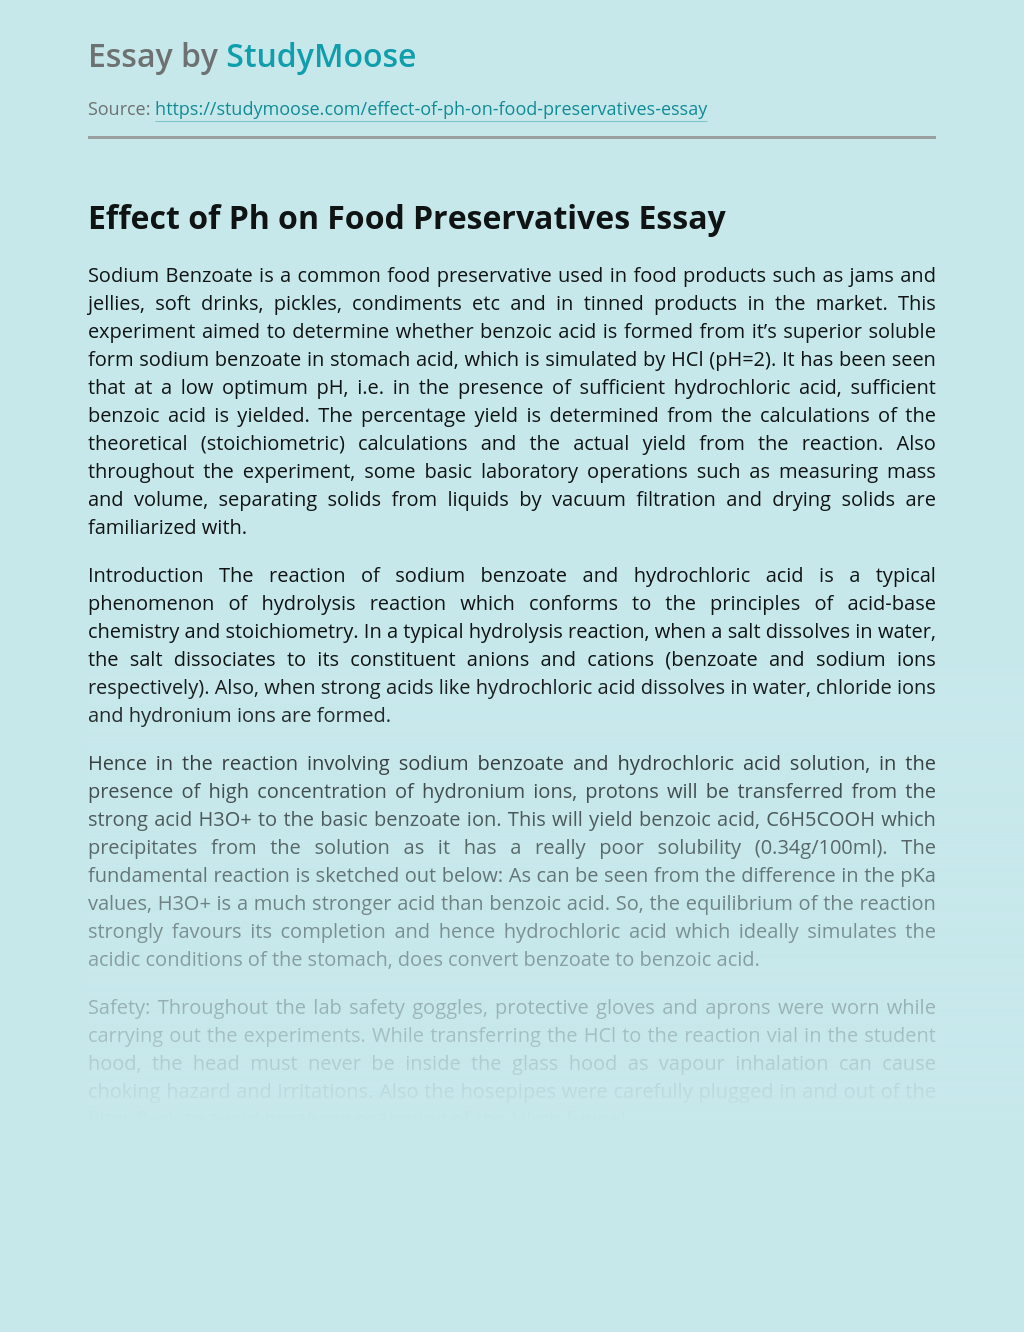 Effect of Ph on Food Preservatives